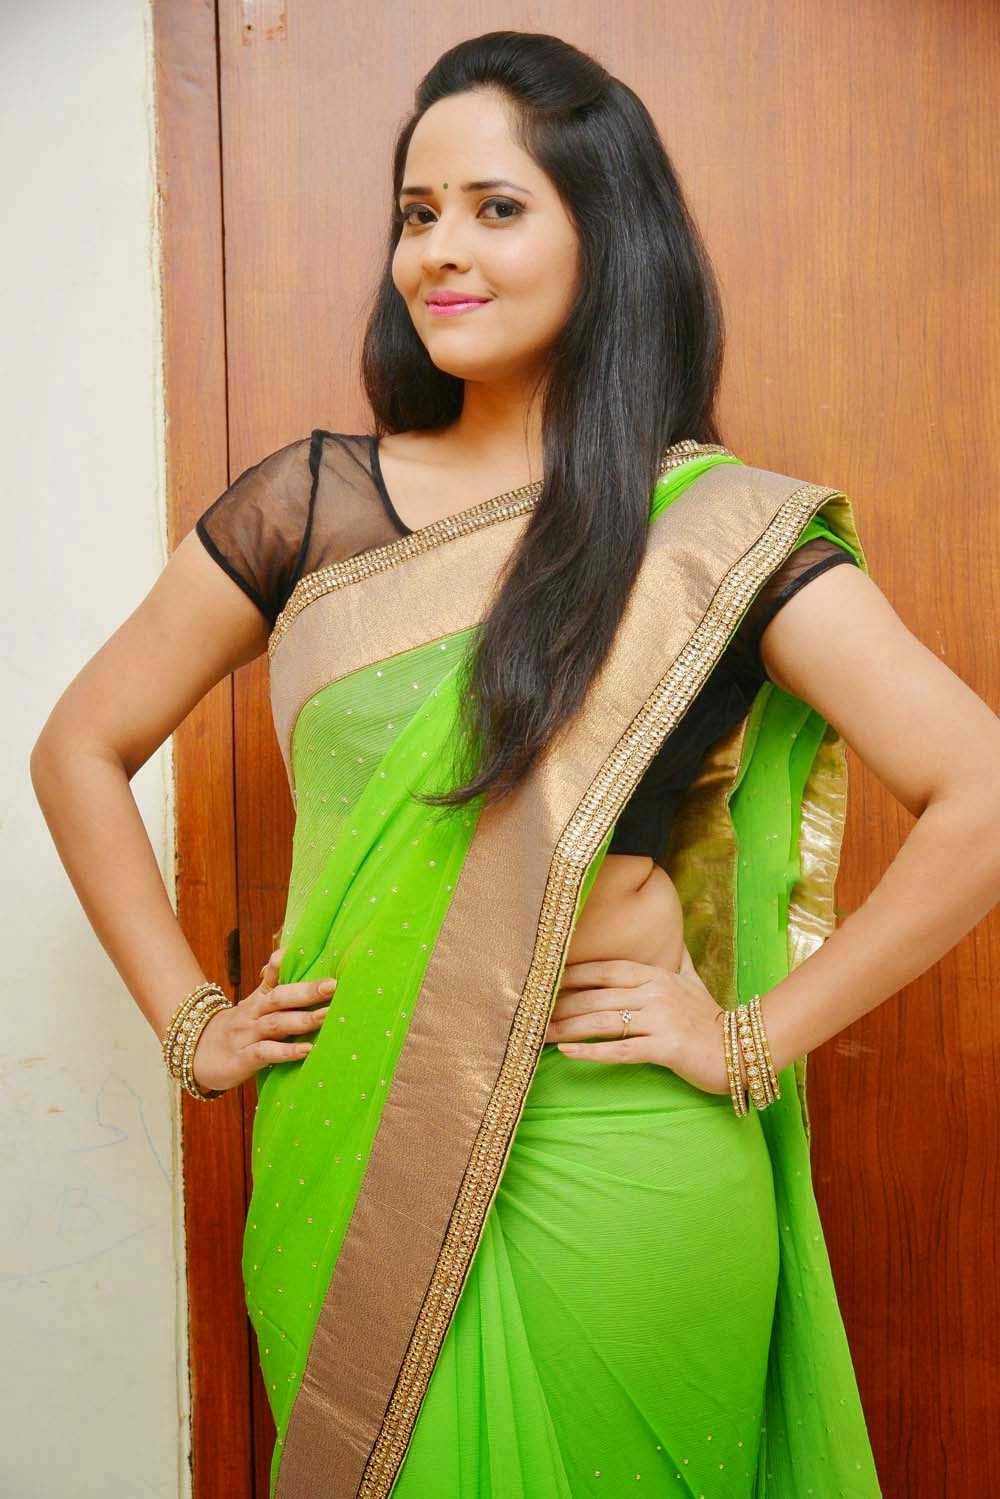 Glamorous Photos Of Telugu Tv Anchor Anasuya Hip Navel Show In Green Saree